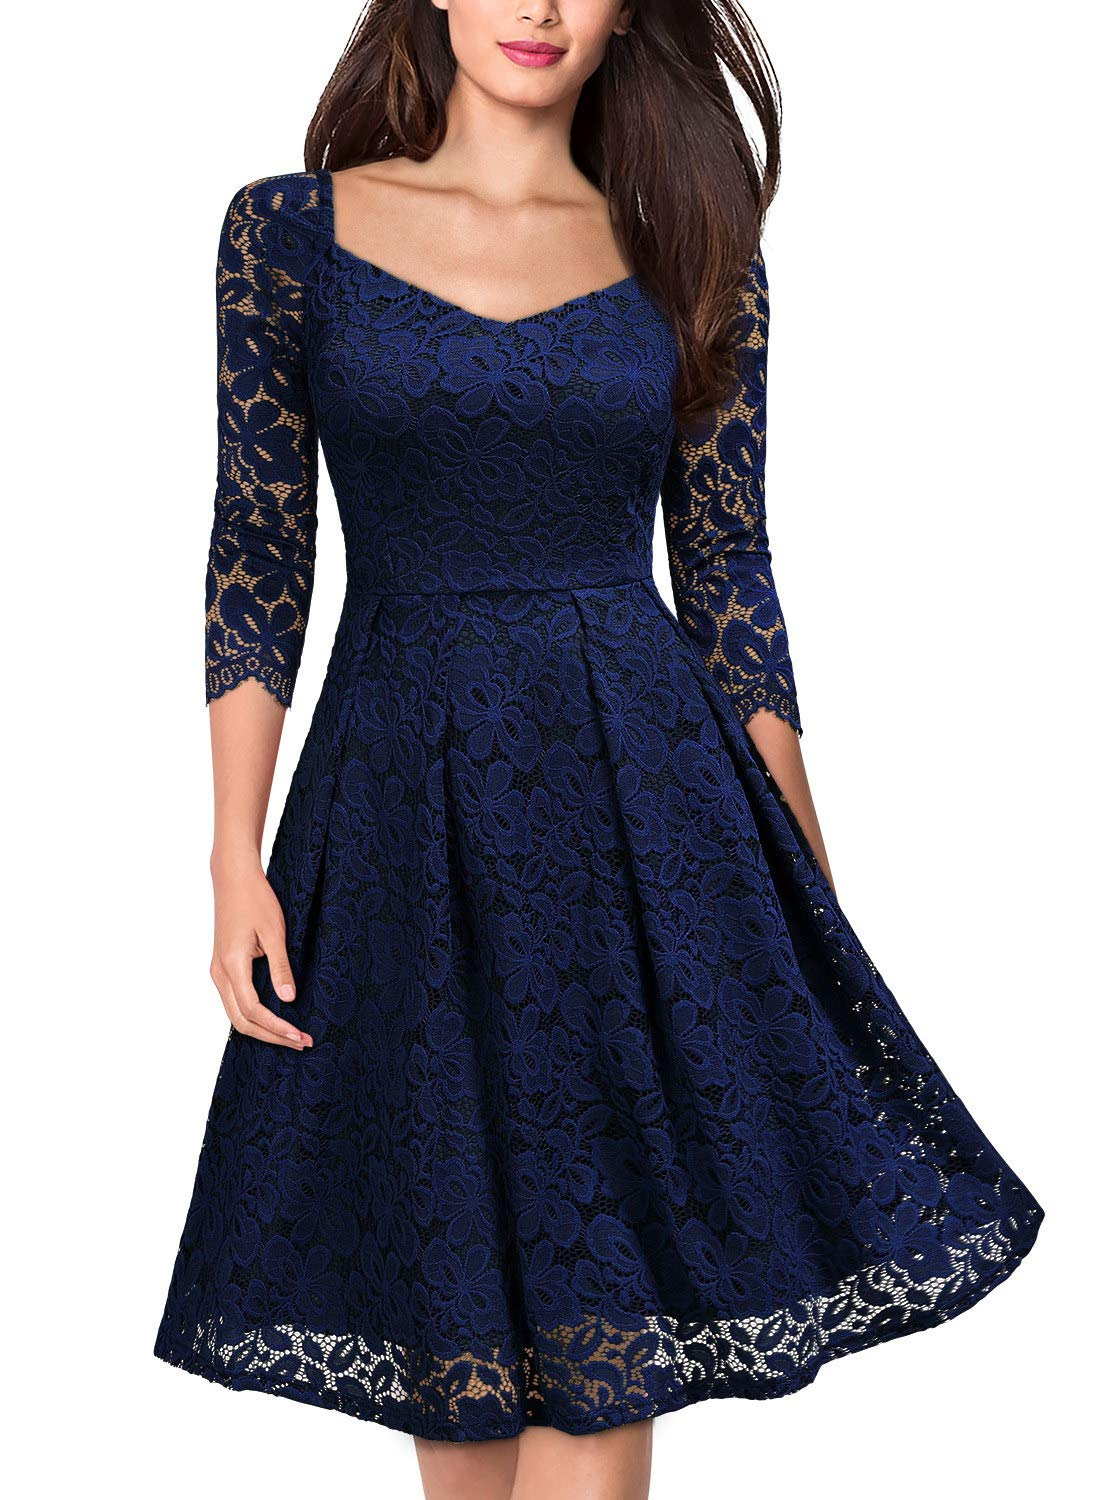 eb5a379150a6 MISSMAY Women's Vintage Floral Lace Half Sleeve V Neck Cocktail Formal Swing  Dress